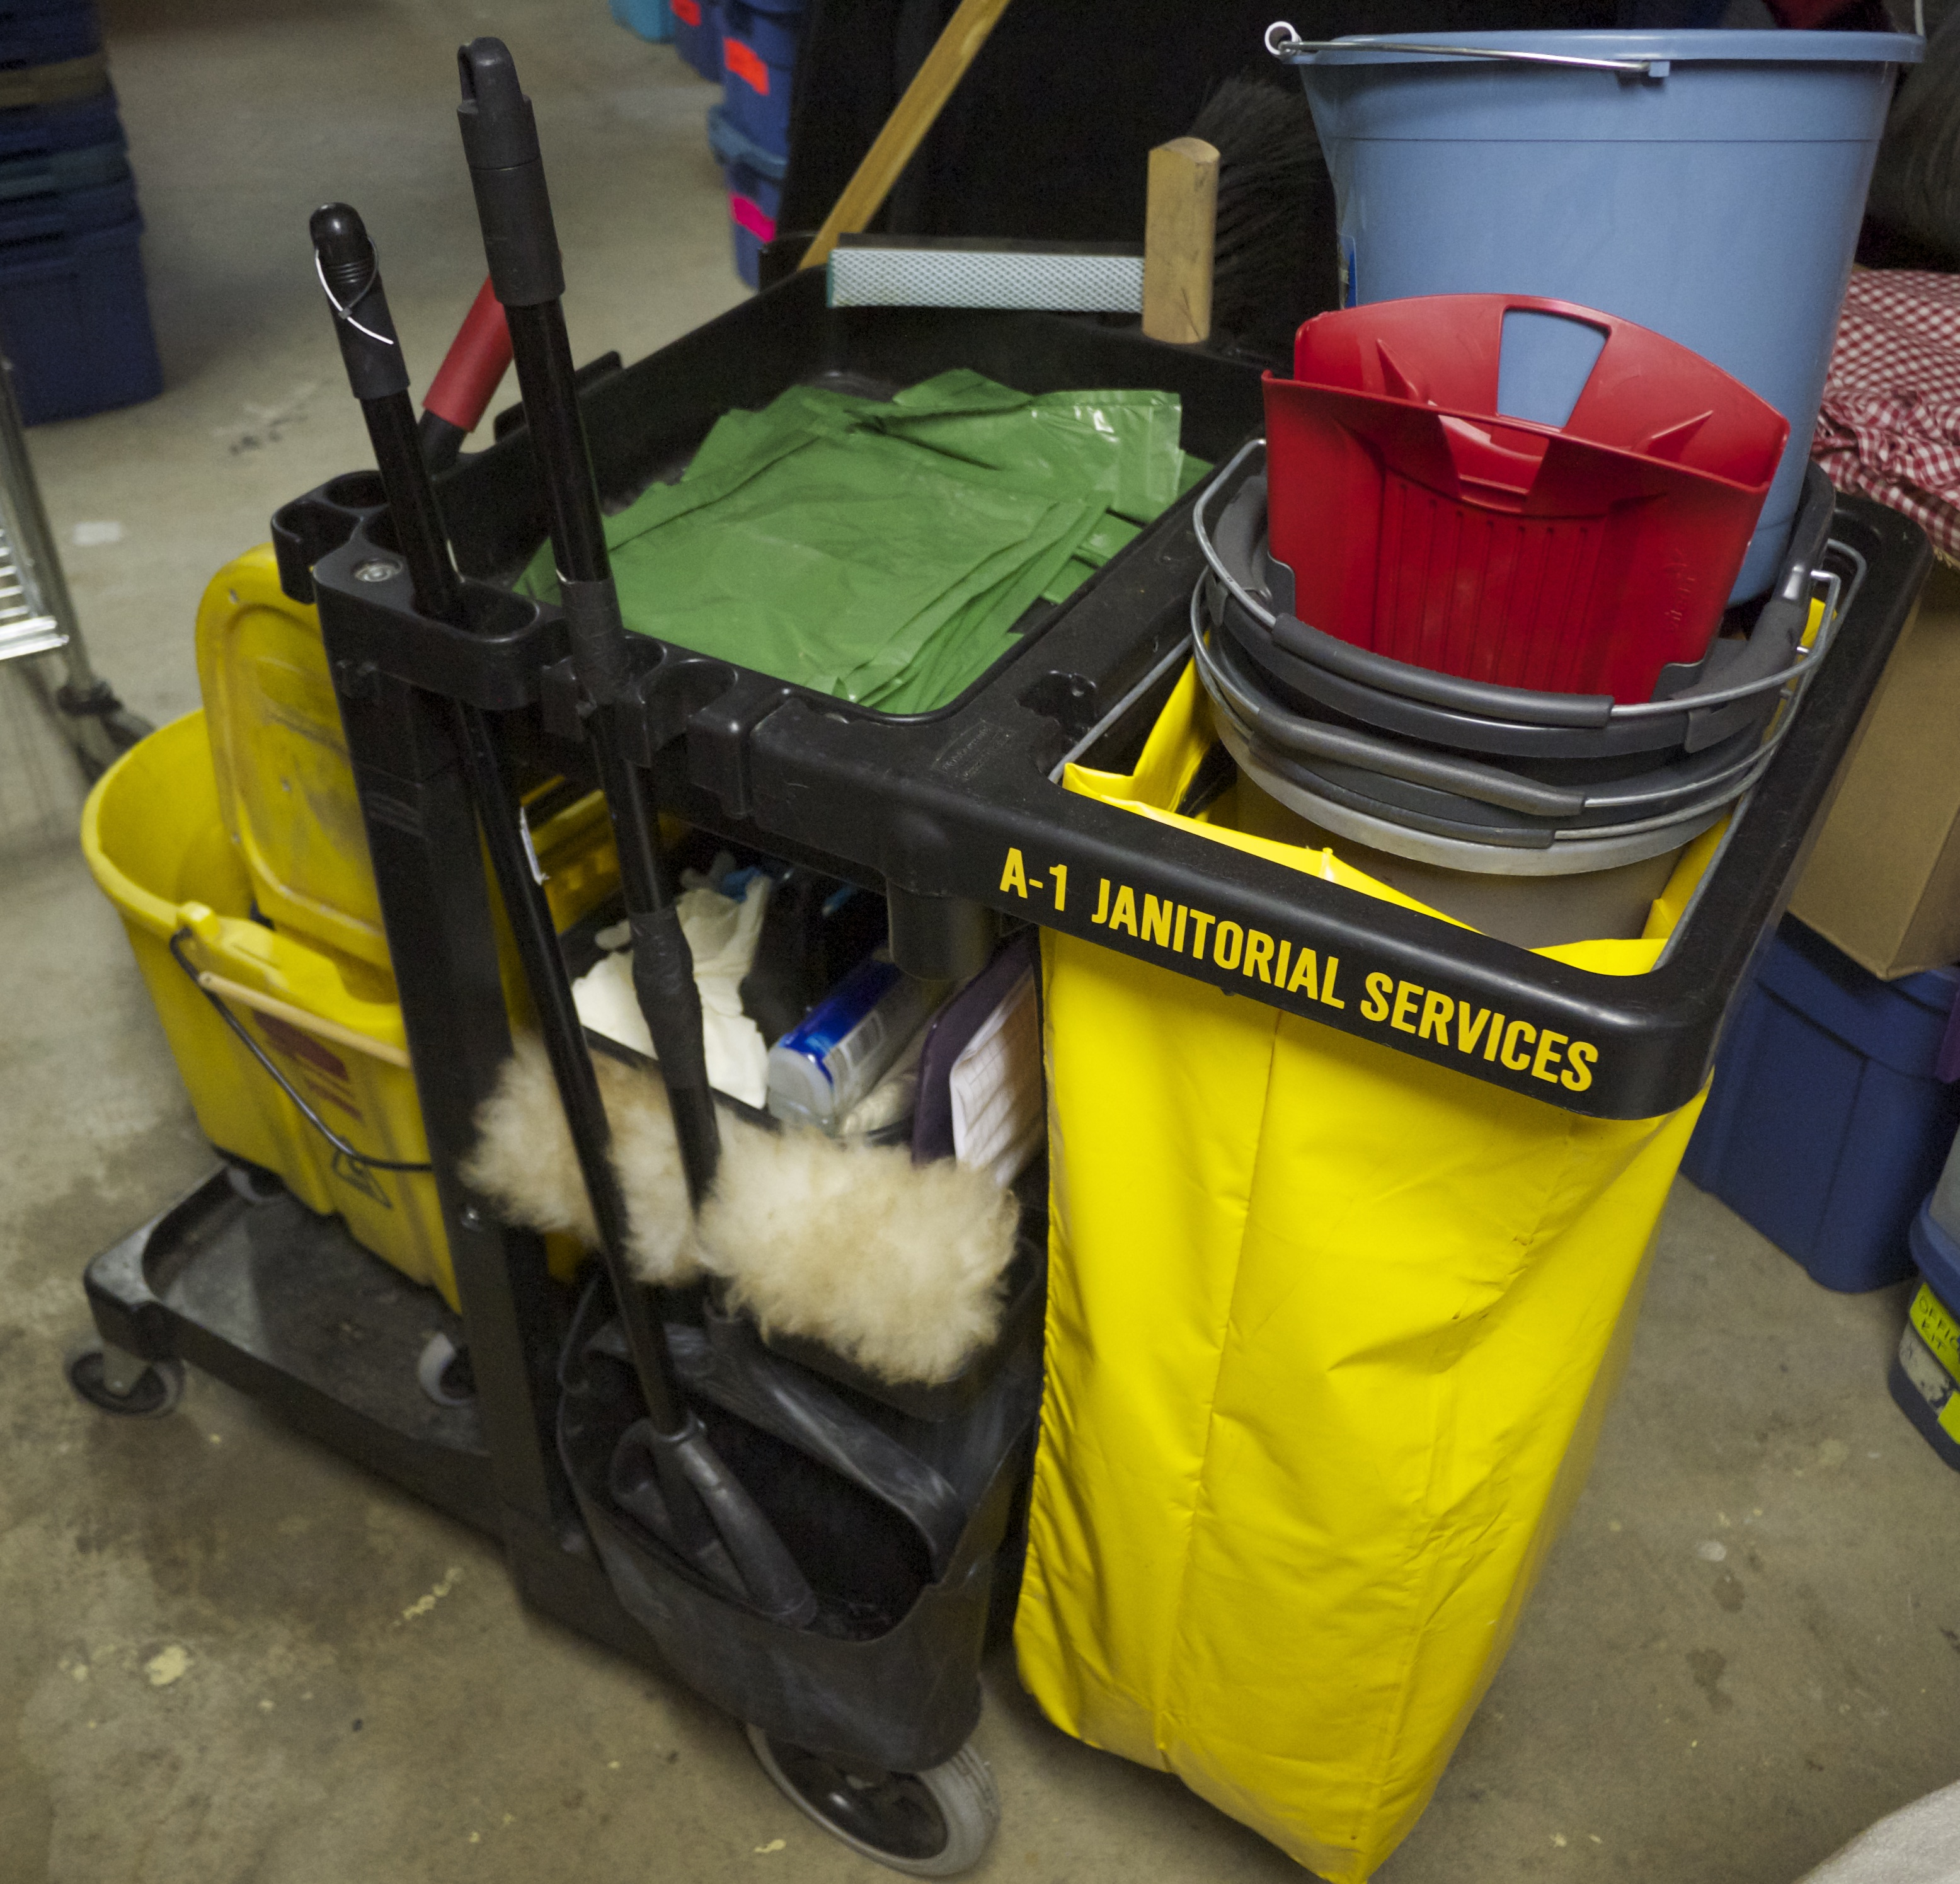 Janitorial Services cart